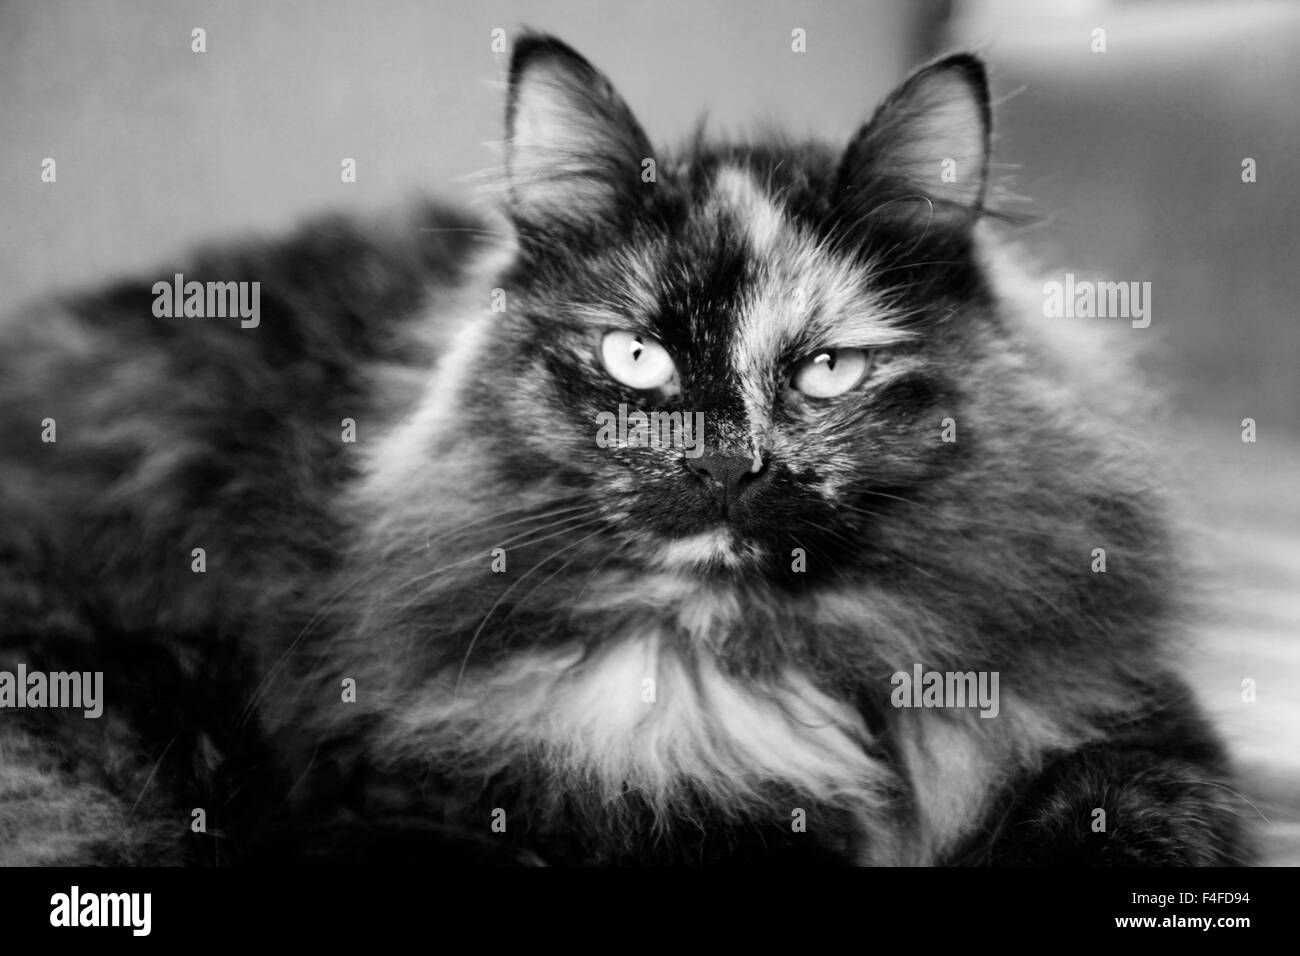 Siberian Black and White Stock Photos & Images - Alamy